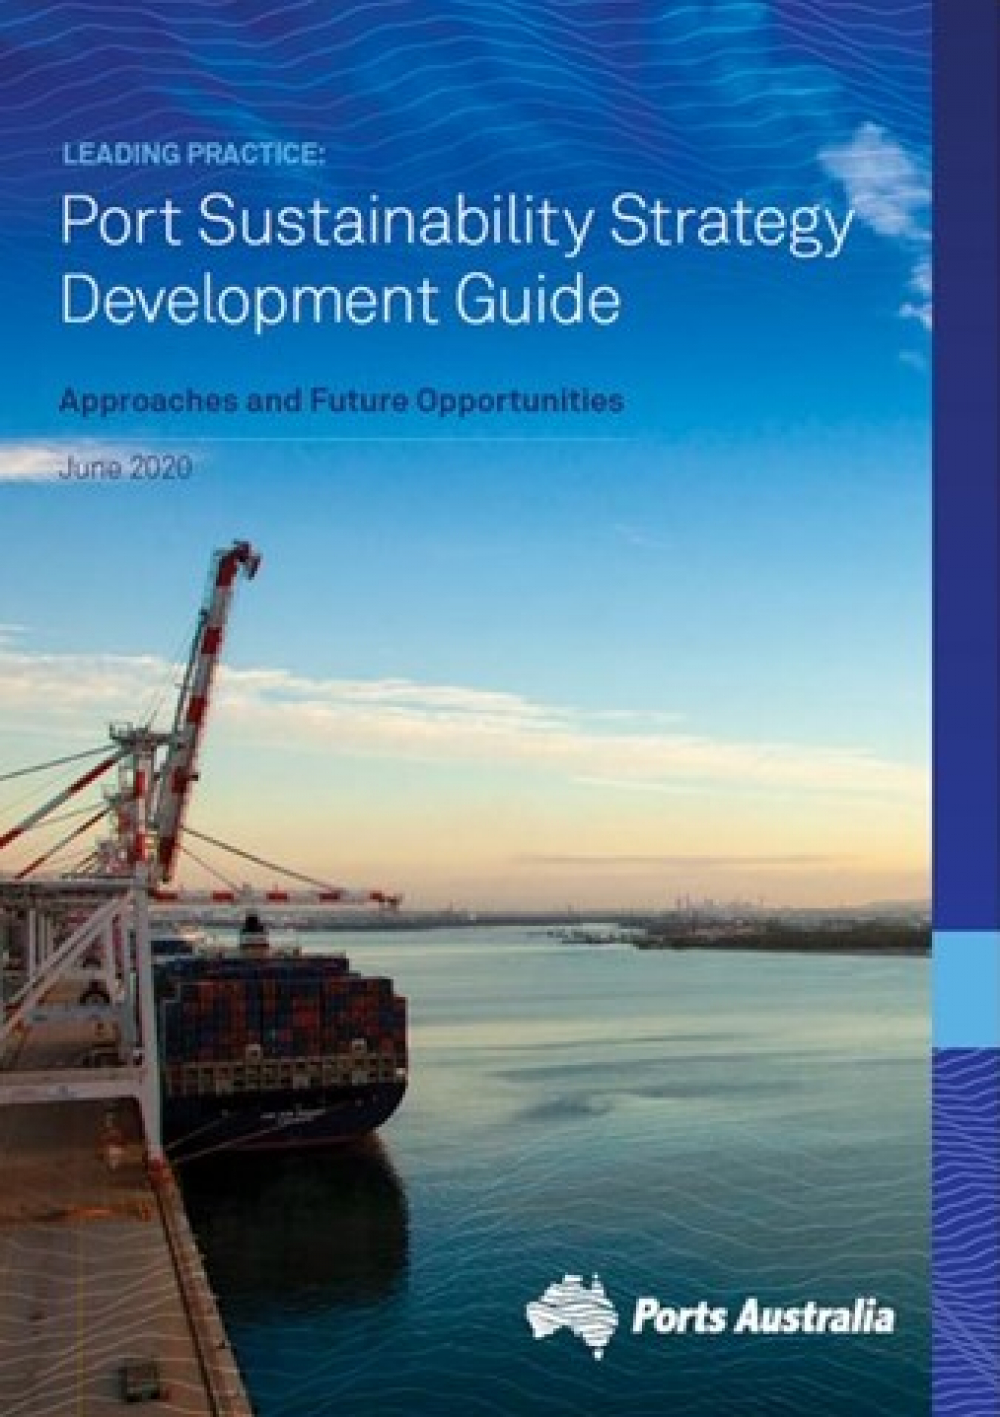 Ports Australia publishes new Sustainability Strategy Development Guide